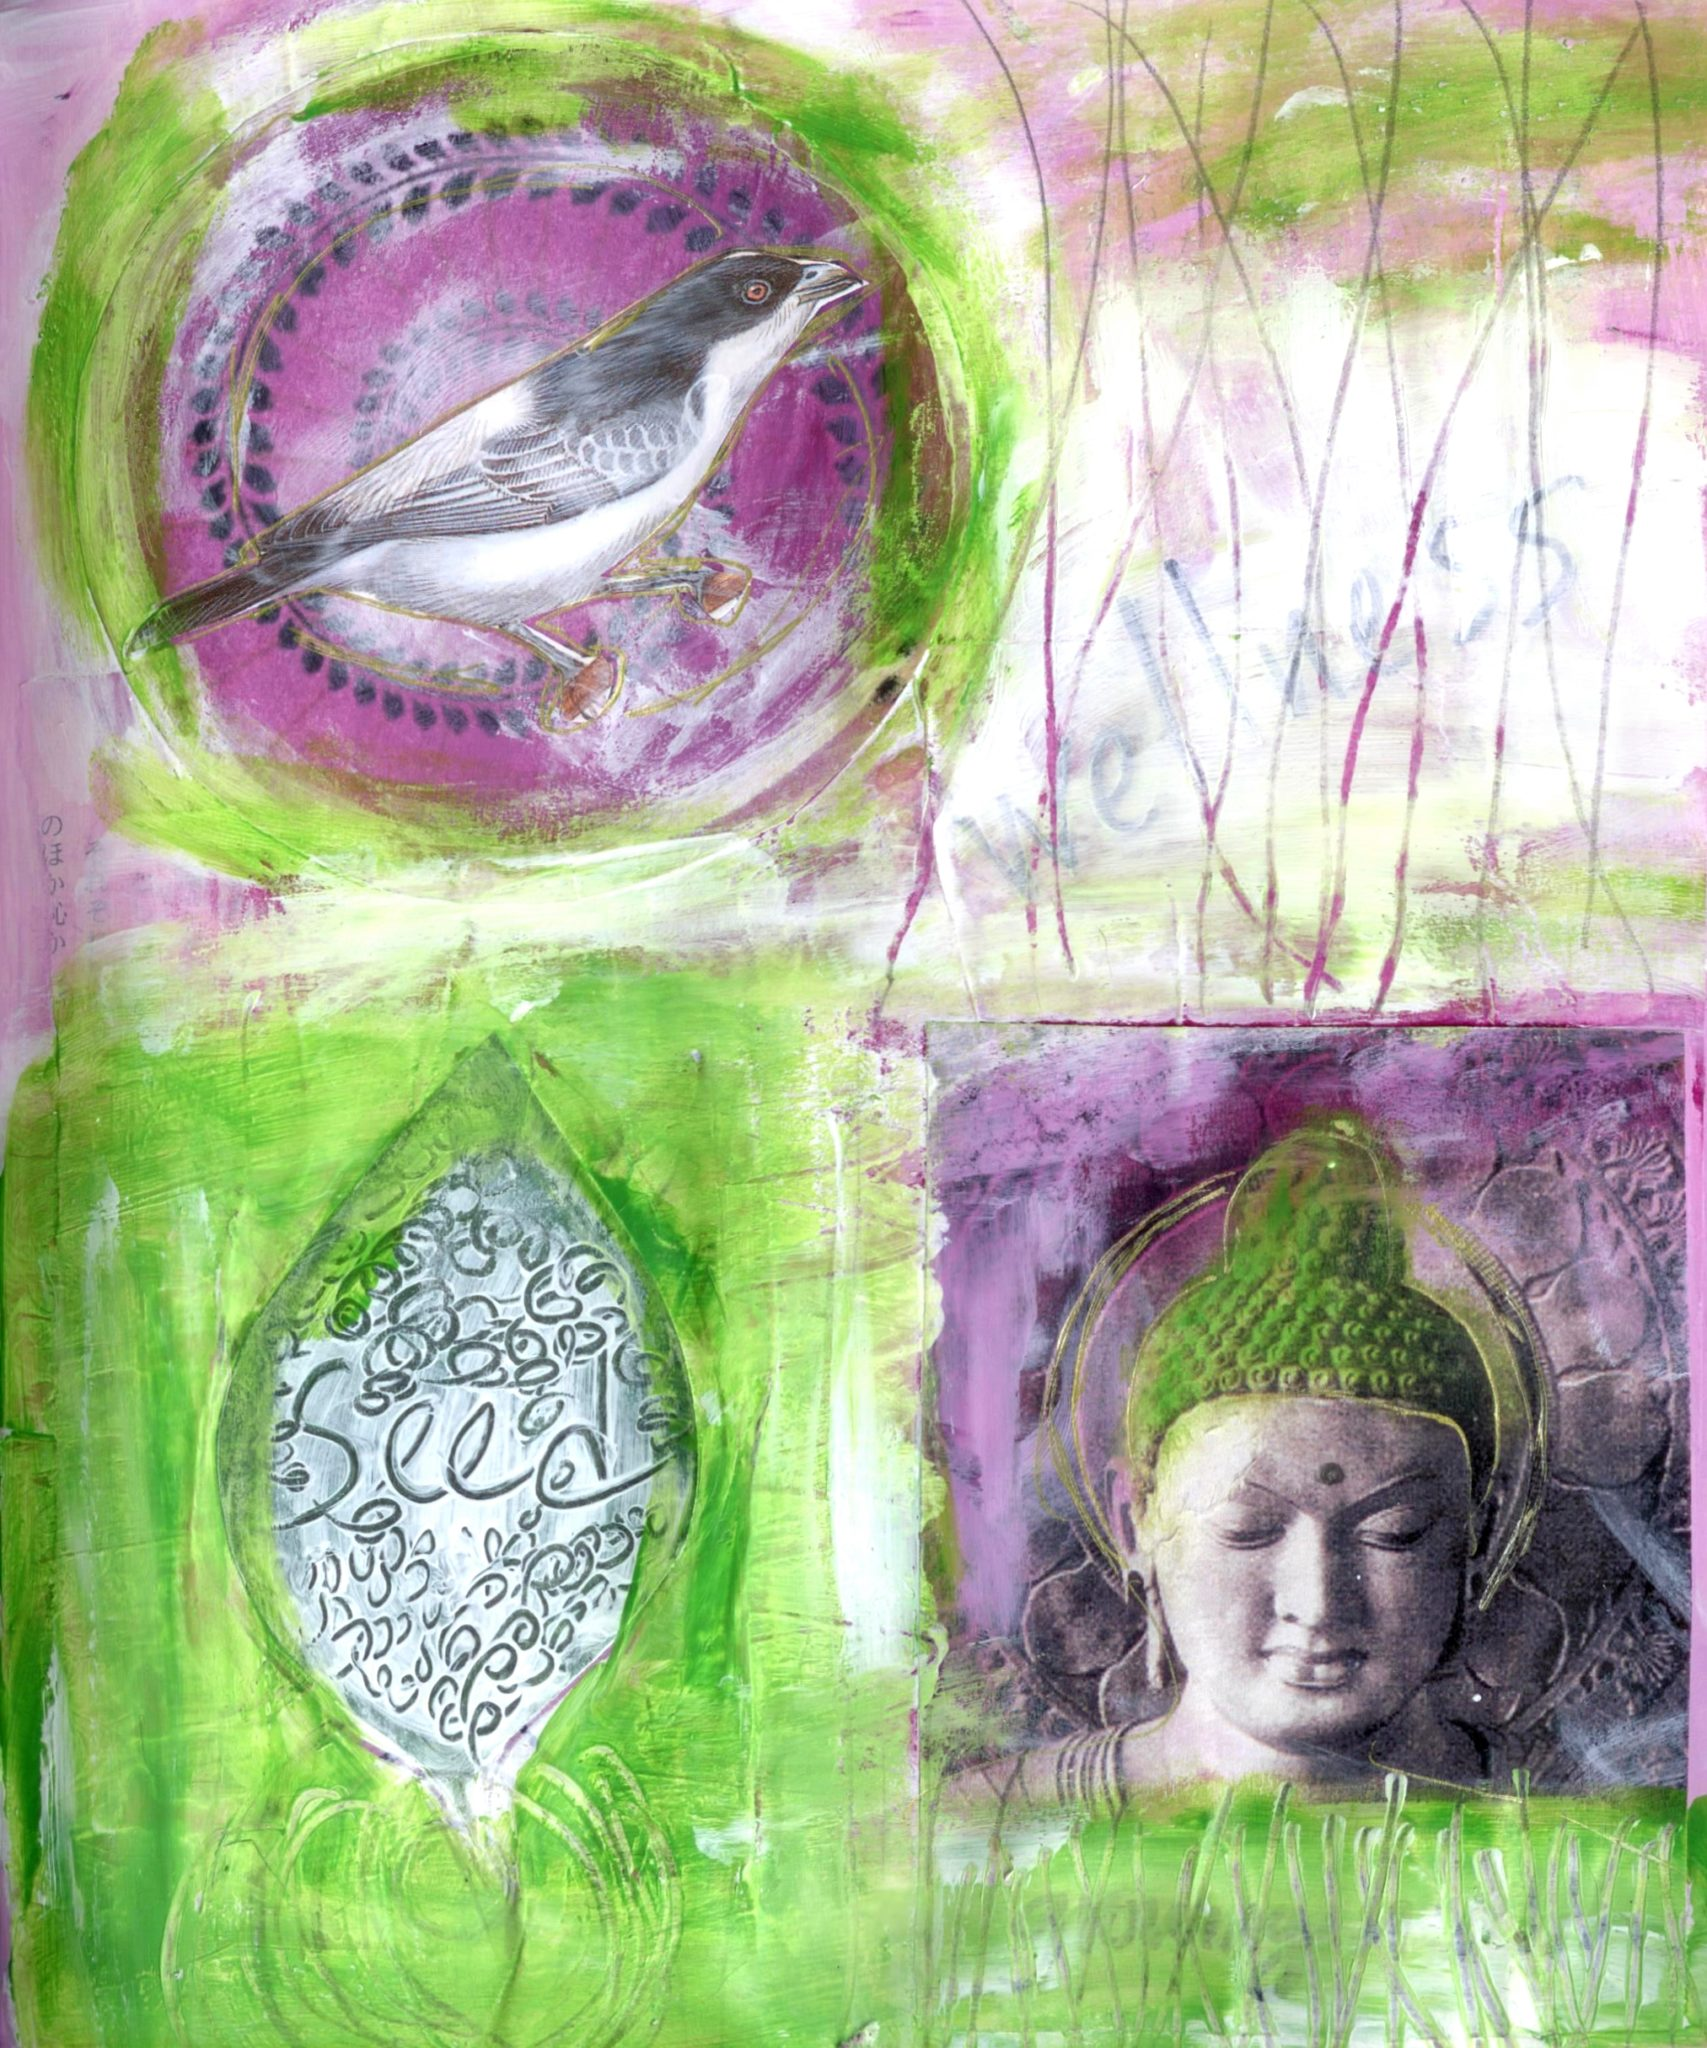 Seeds of Wellness, mixed media collage by Courtney Putnam